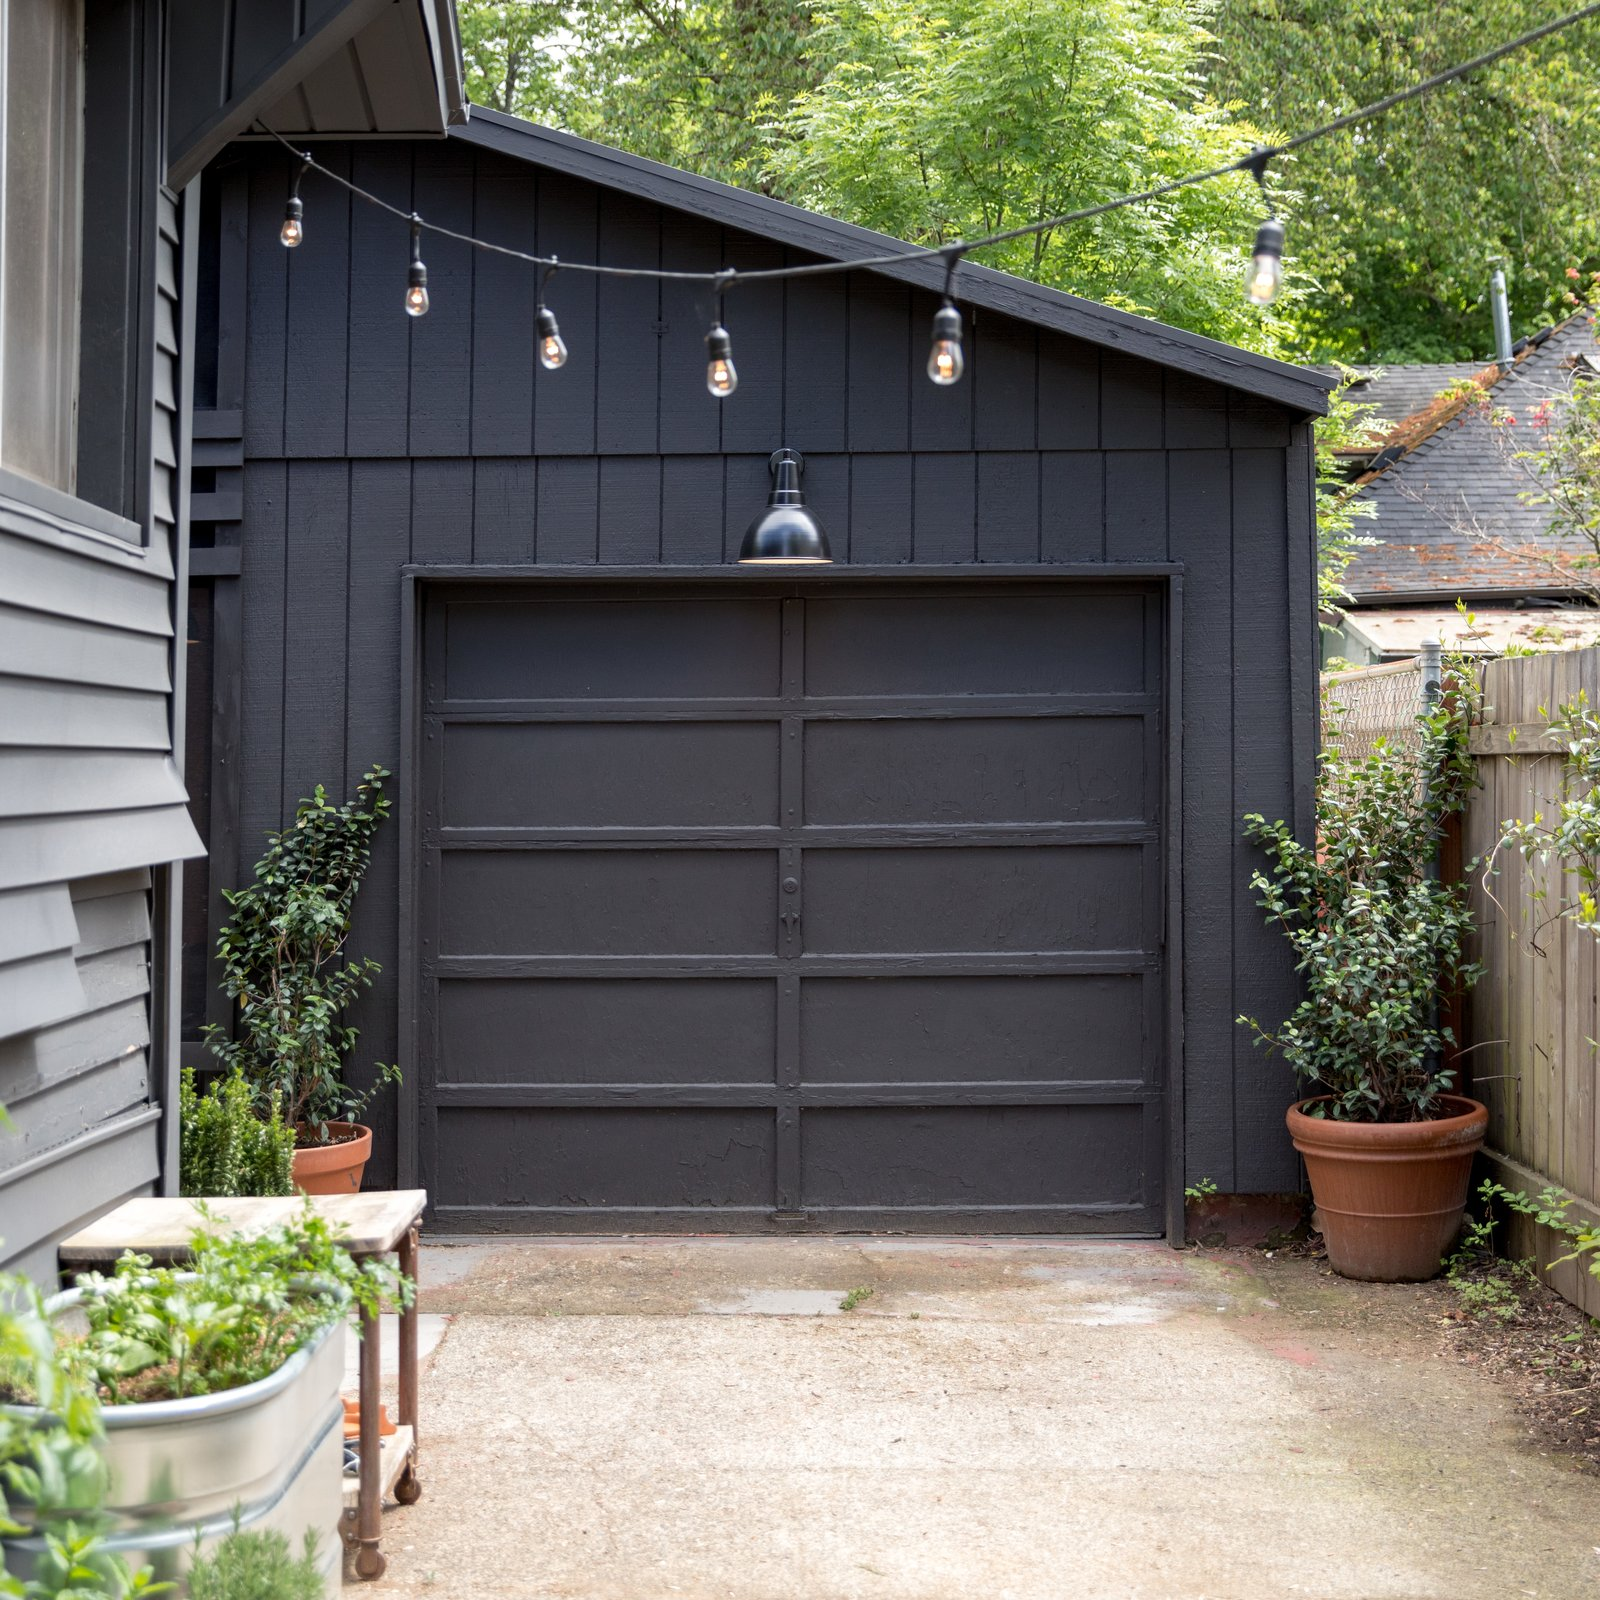 Role Of Garage Door In Garage Design: Photo 11 Of 11 In Budget Breakdown: A Weekend DIY Turns A